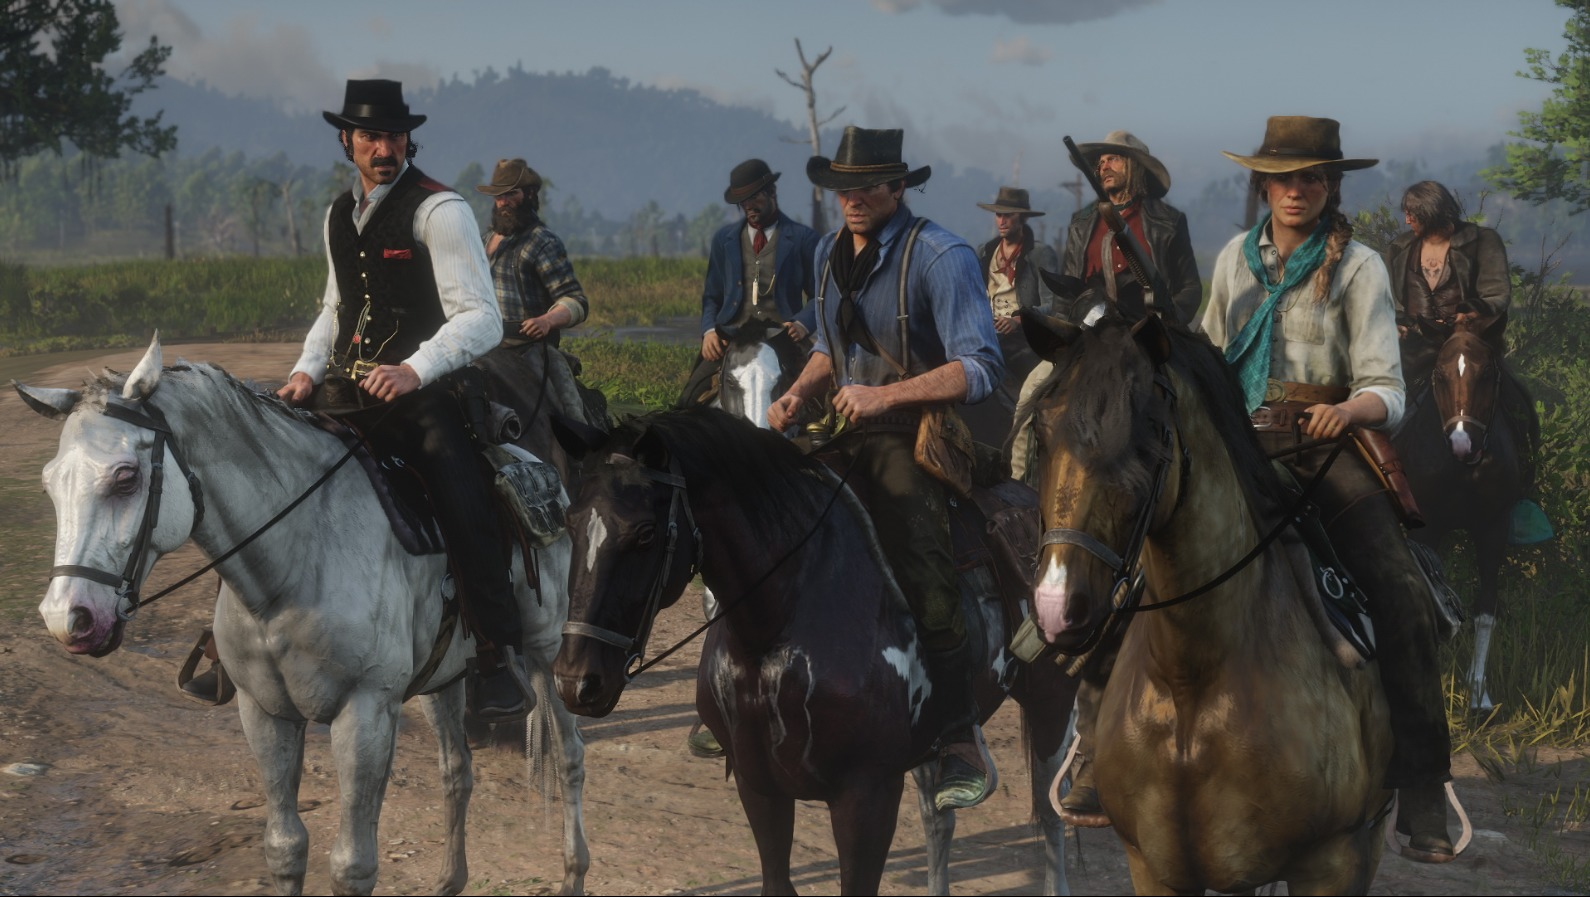 How Rockstar Built The Love Story At The Heart Of Red Dead Redemption 2 Up Station Malaysia Red dead redemption characters voice actors / cast : heart of red dead redemption 2